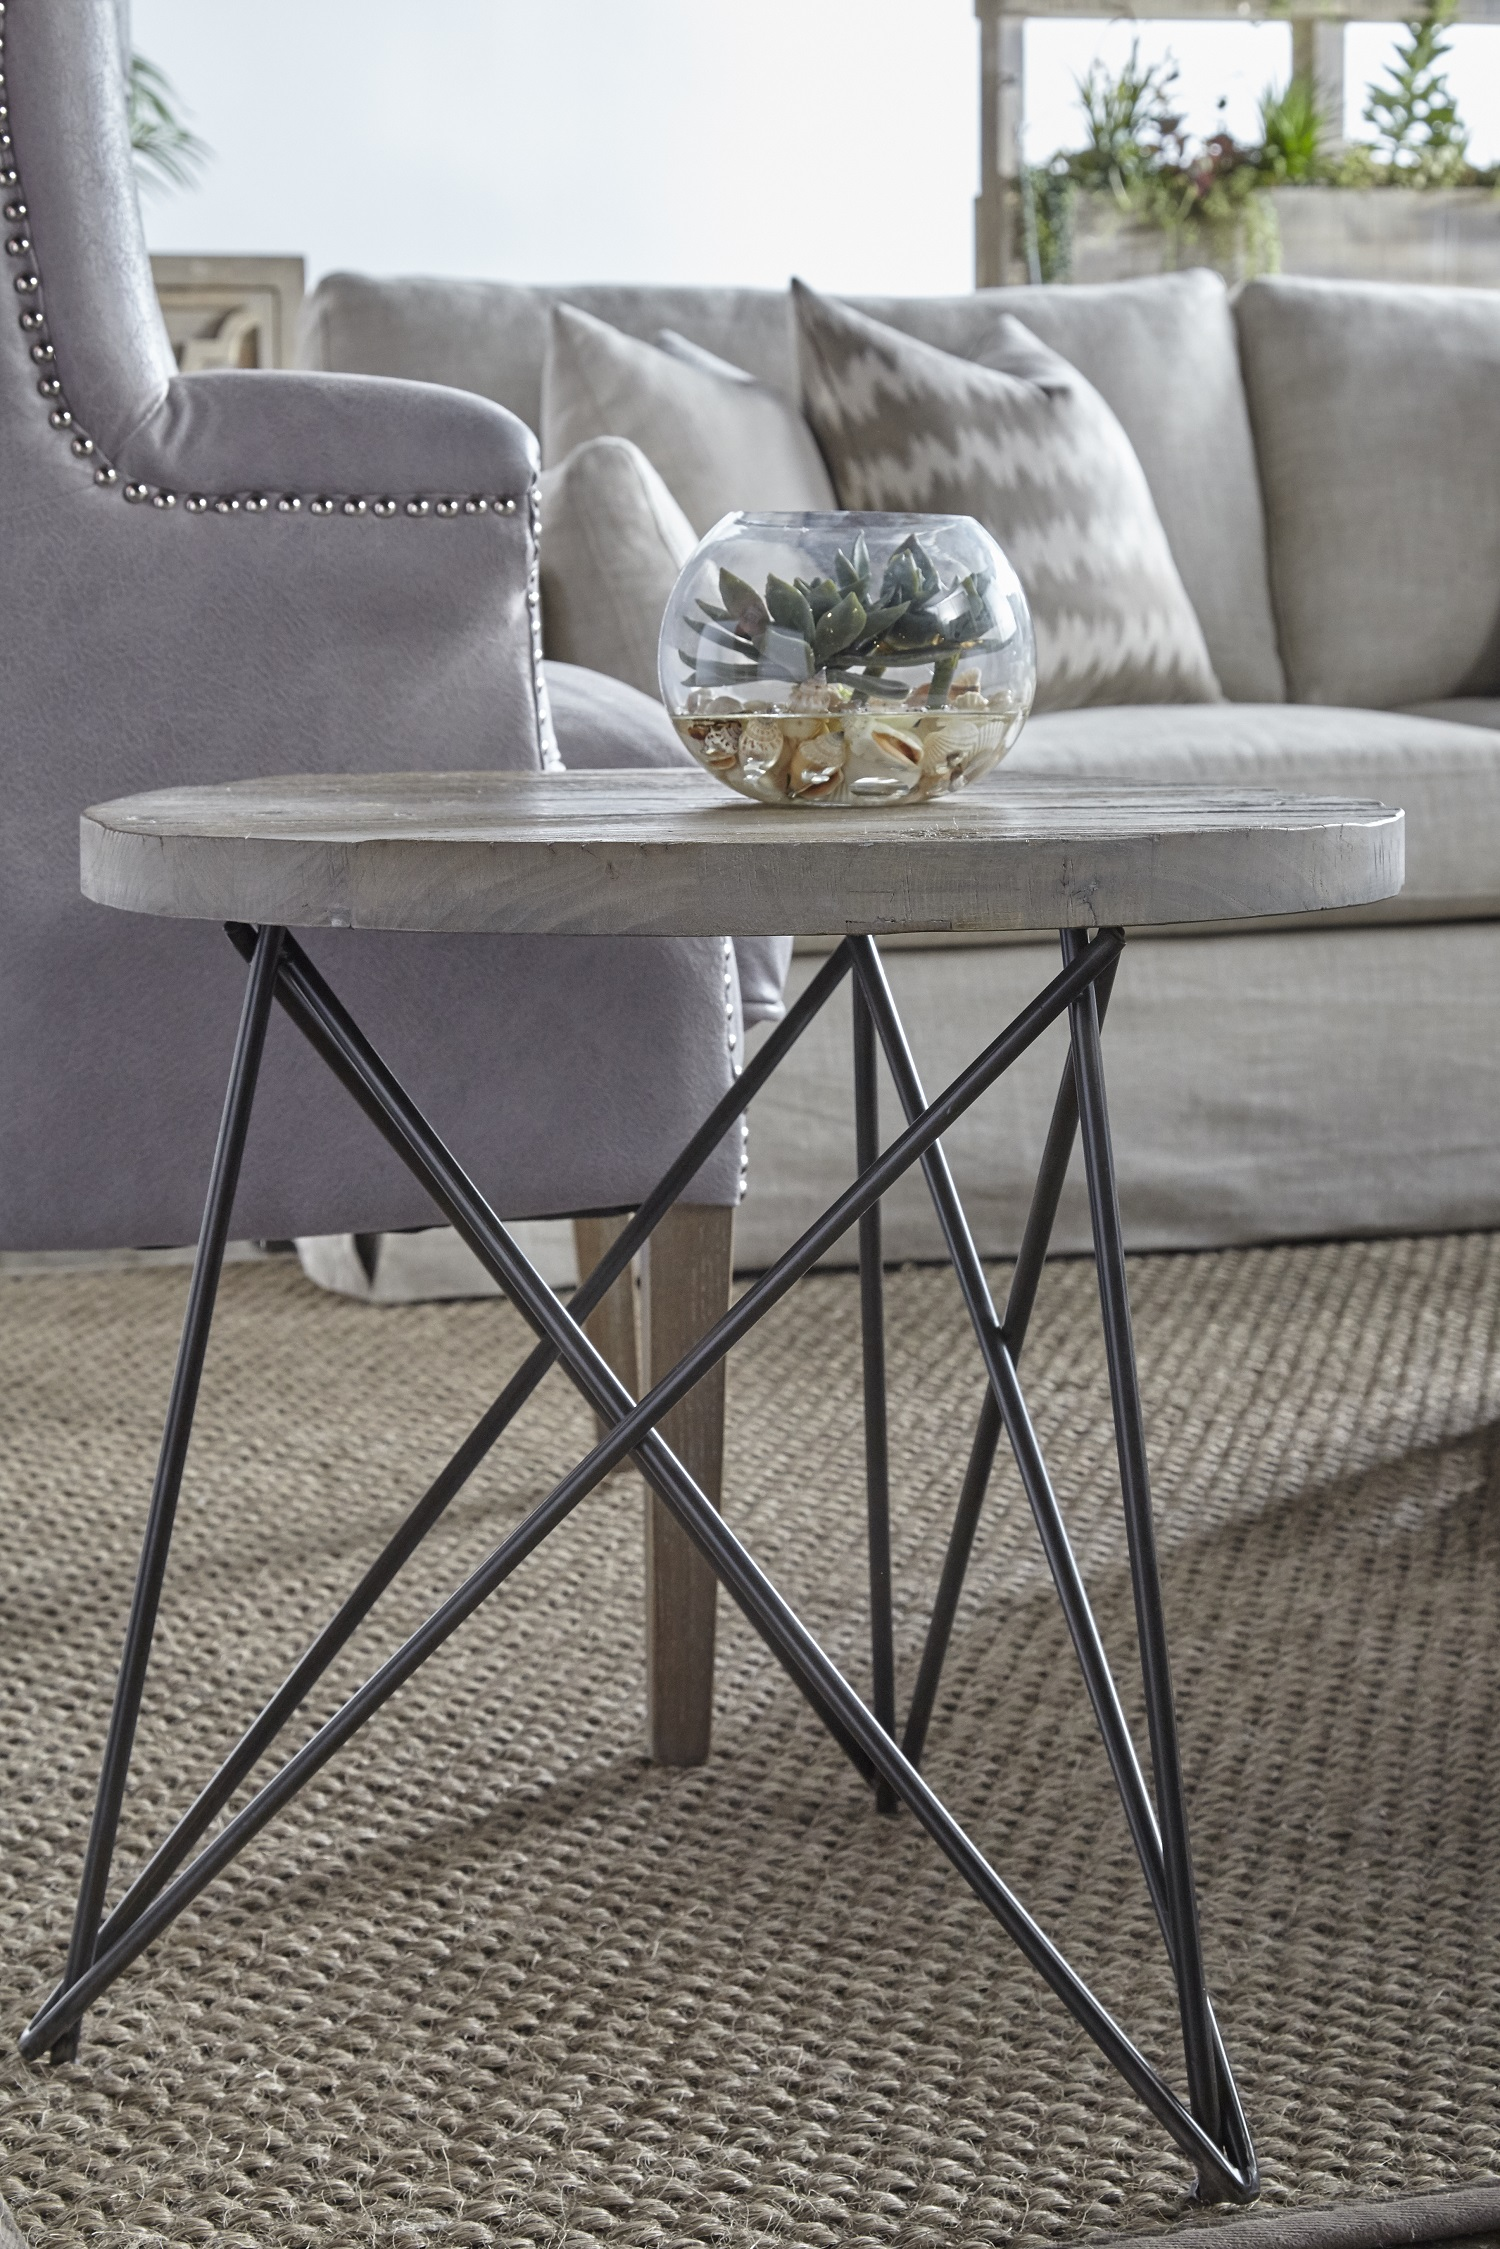 canvas accent table smoke gray detail metal folding two tier end retro ikea bedroom cupboards half moon wall gold center west elm coat rack homemade outdoor coffee black glass